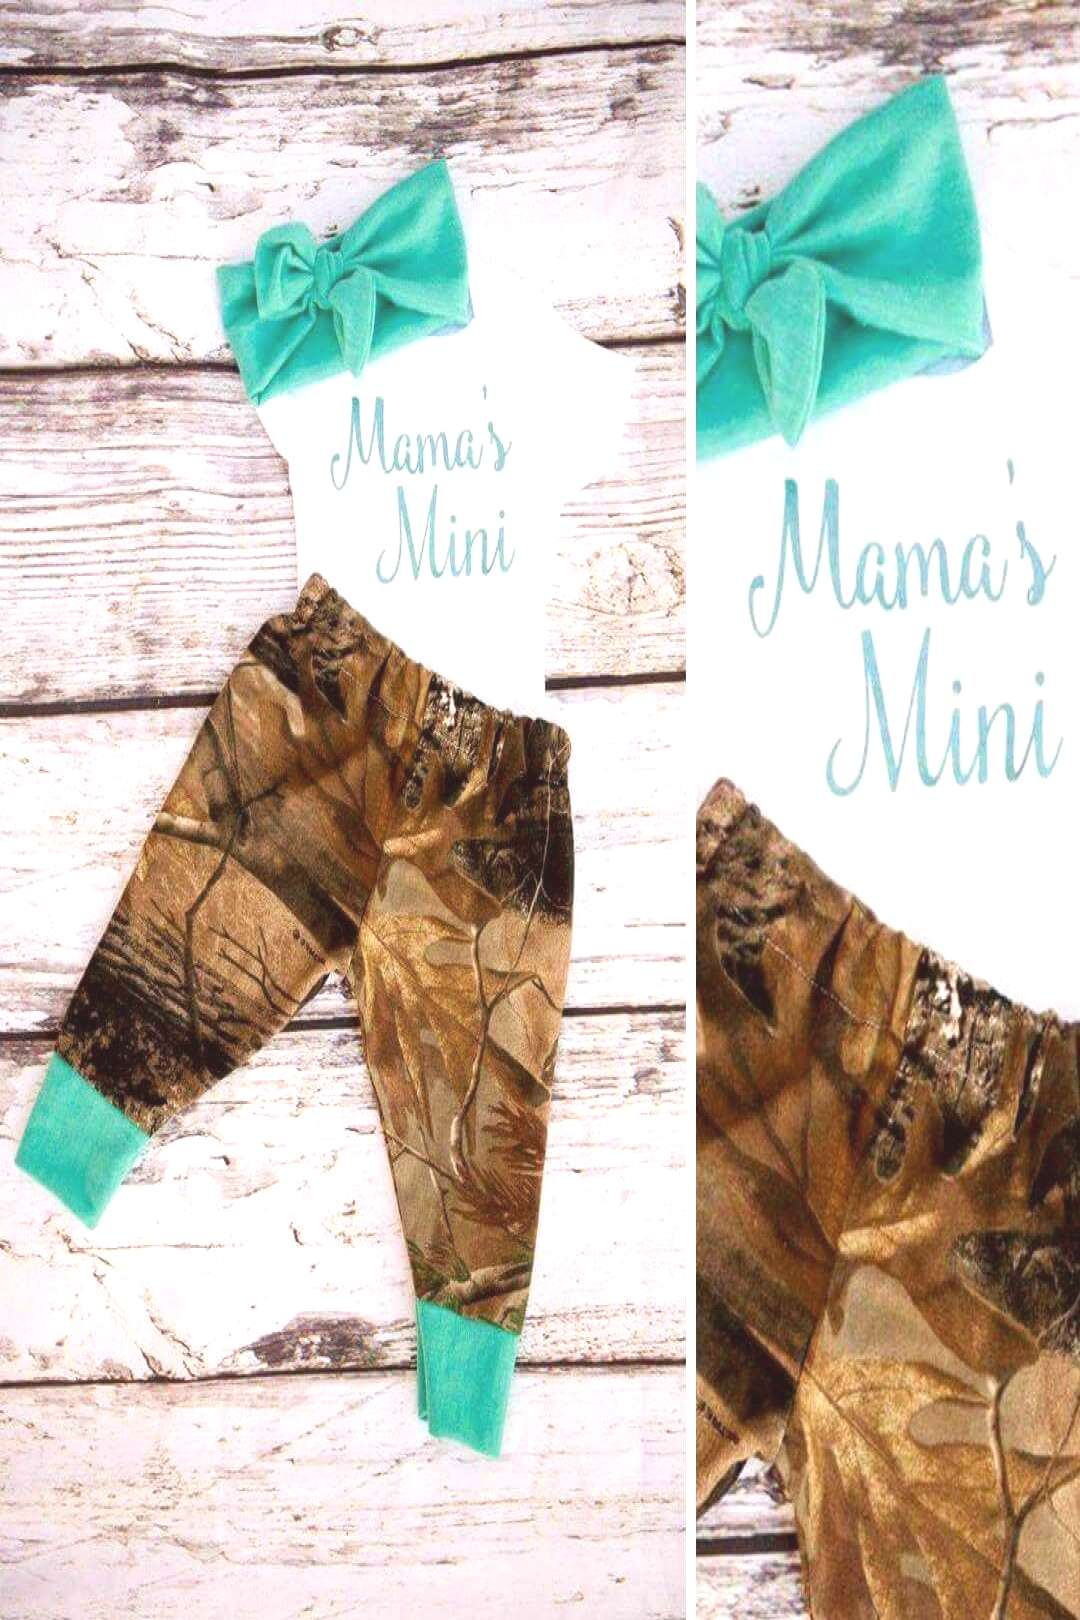 Teal Camo Baby Girl Outfit Informations About Teal Camo Baby Girl Outfit Pin You can easily use m